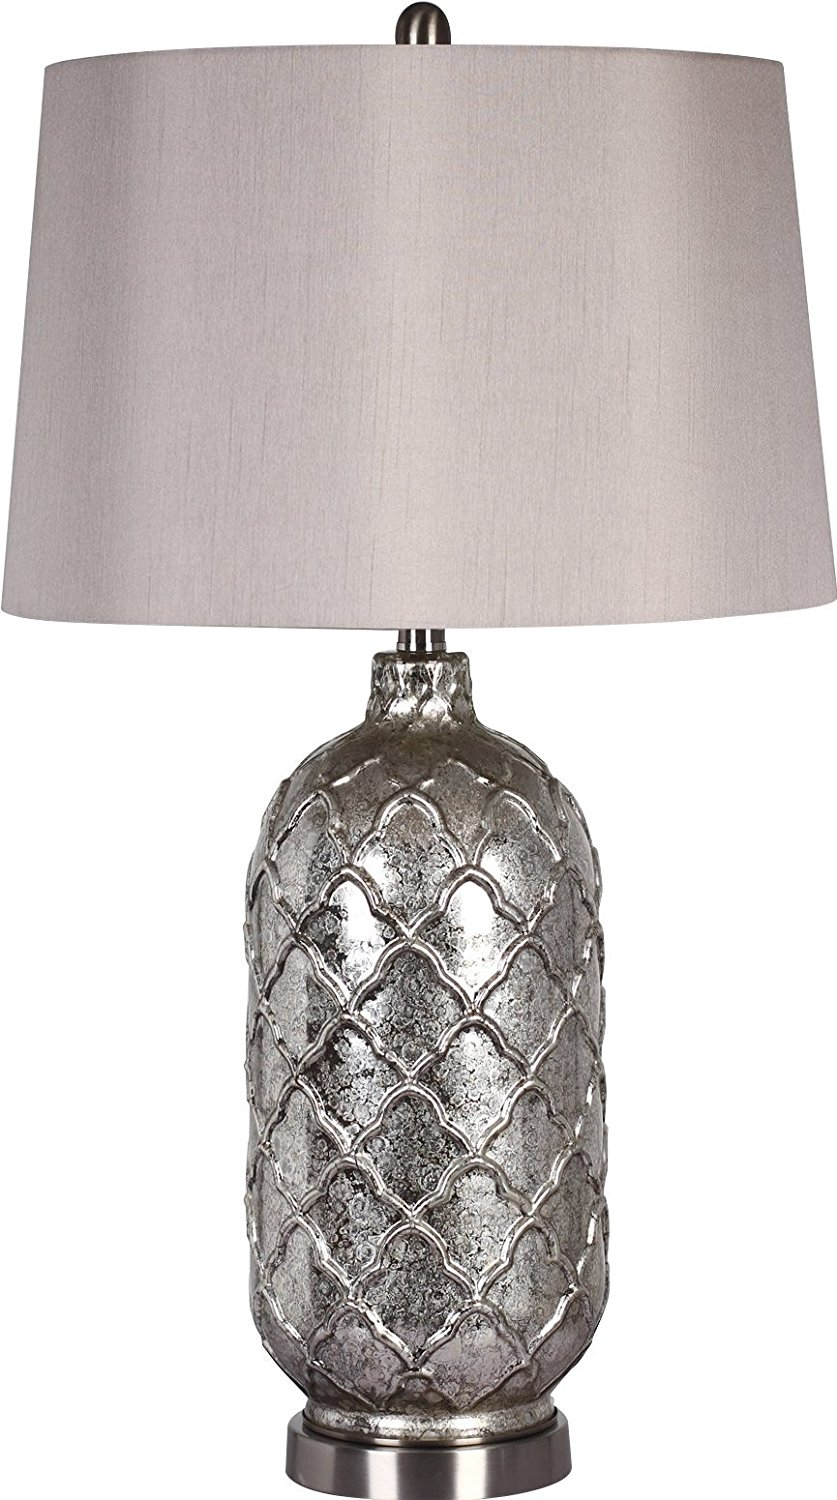 Cheap Bedside Table Lamps Touch, find Bedside Table Lamps Touch ...